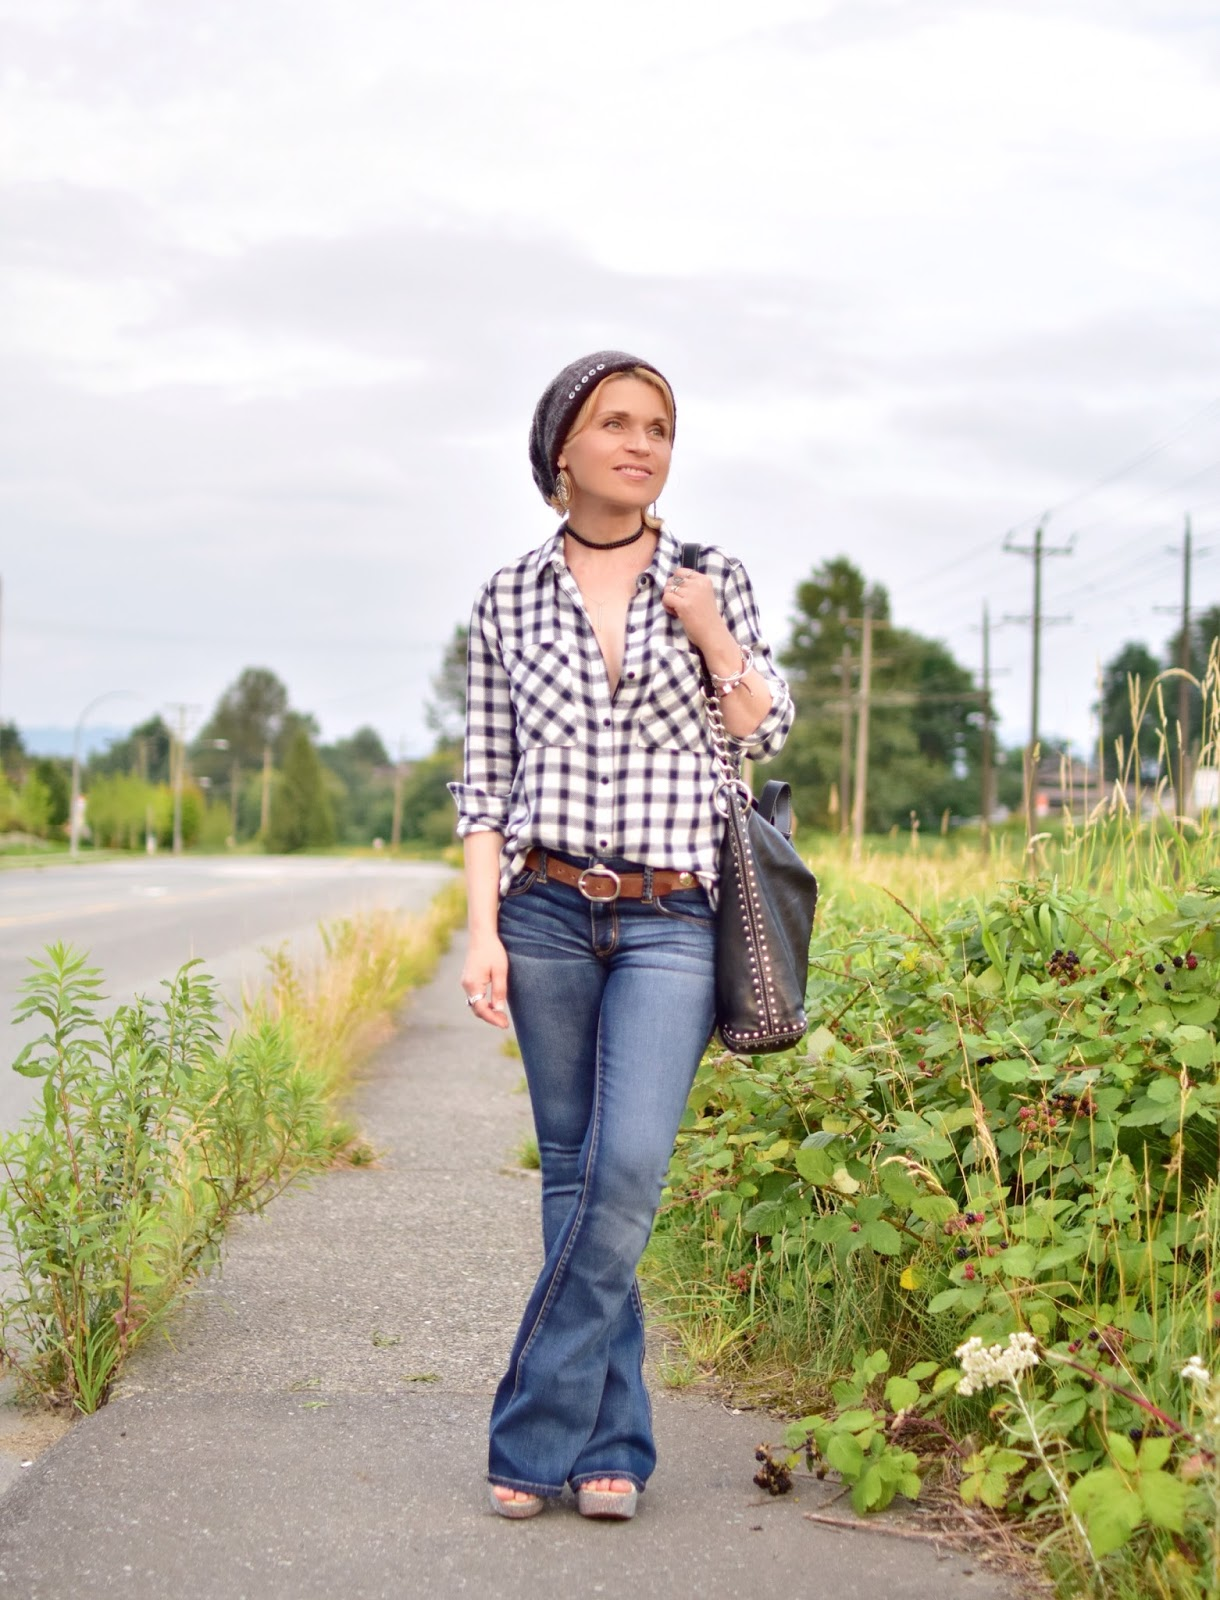 styling flare jeans with a plaid shirt, concho belt, mohair beanie, and MK bag